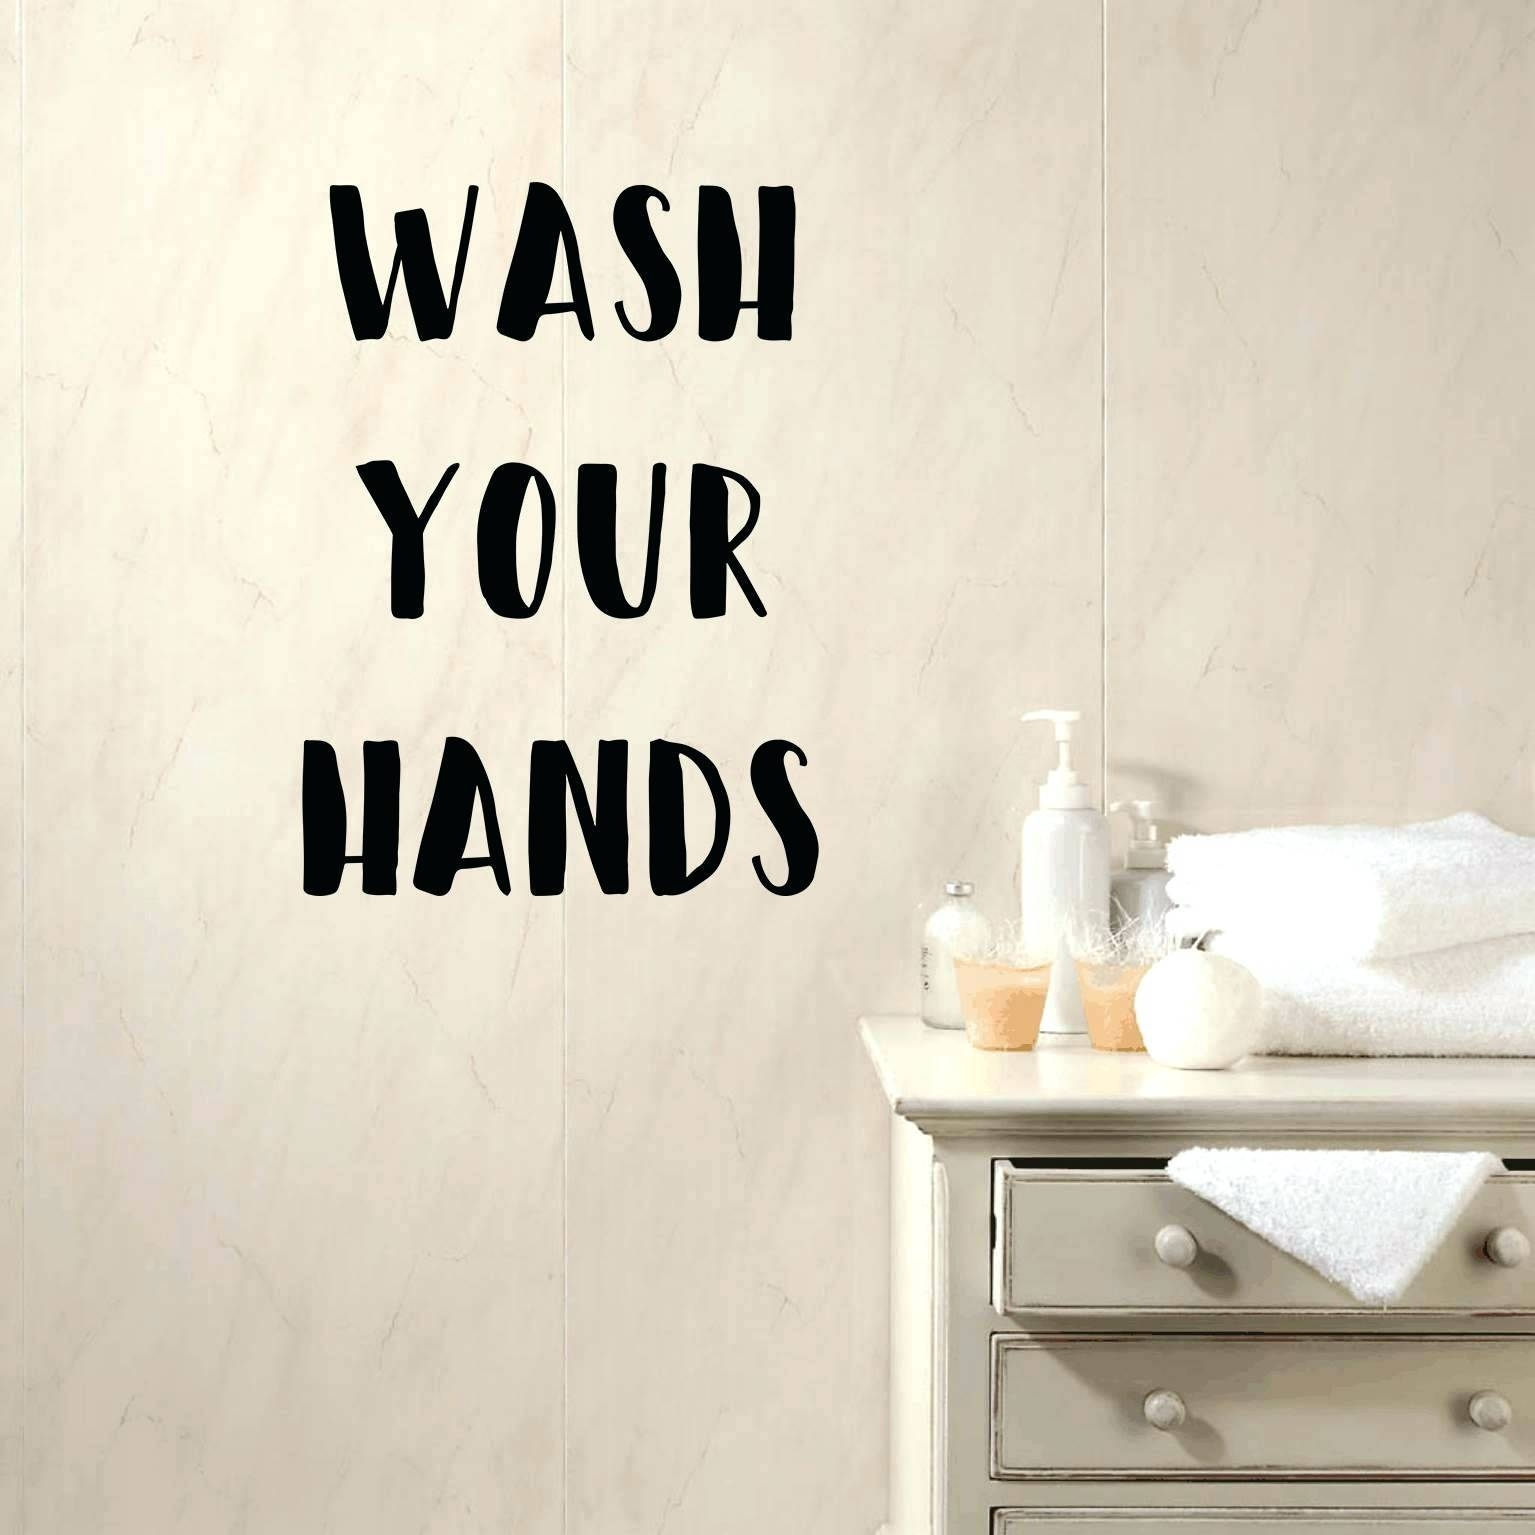 Kids Bathroom Wall Decals Wash Your Hands Decal Bathroom Wall In Most Recently Released Fish Decals For Bathroom (View 17 of 30)